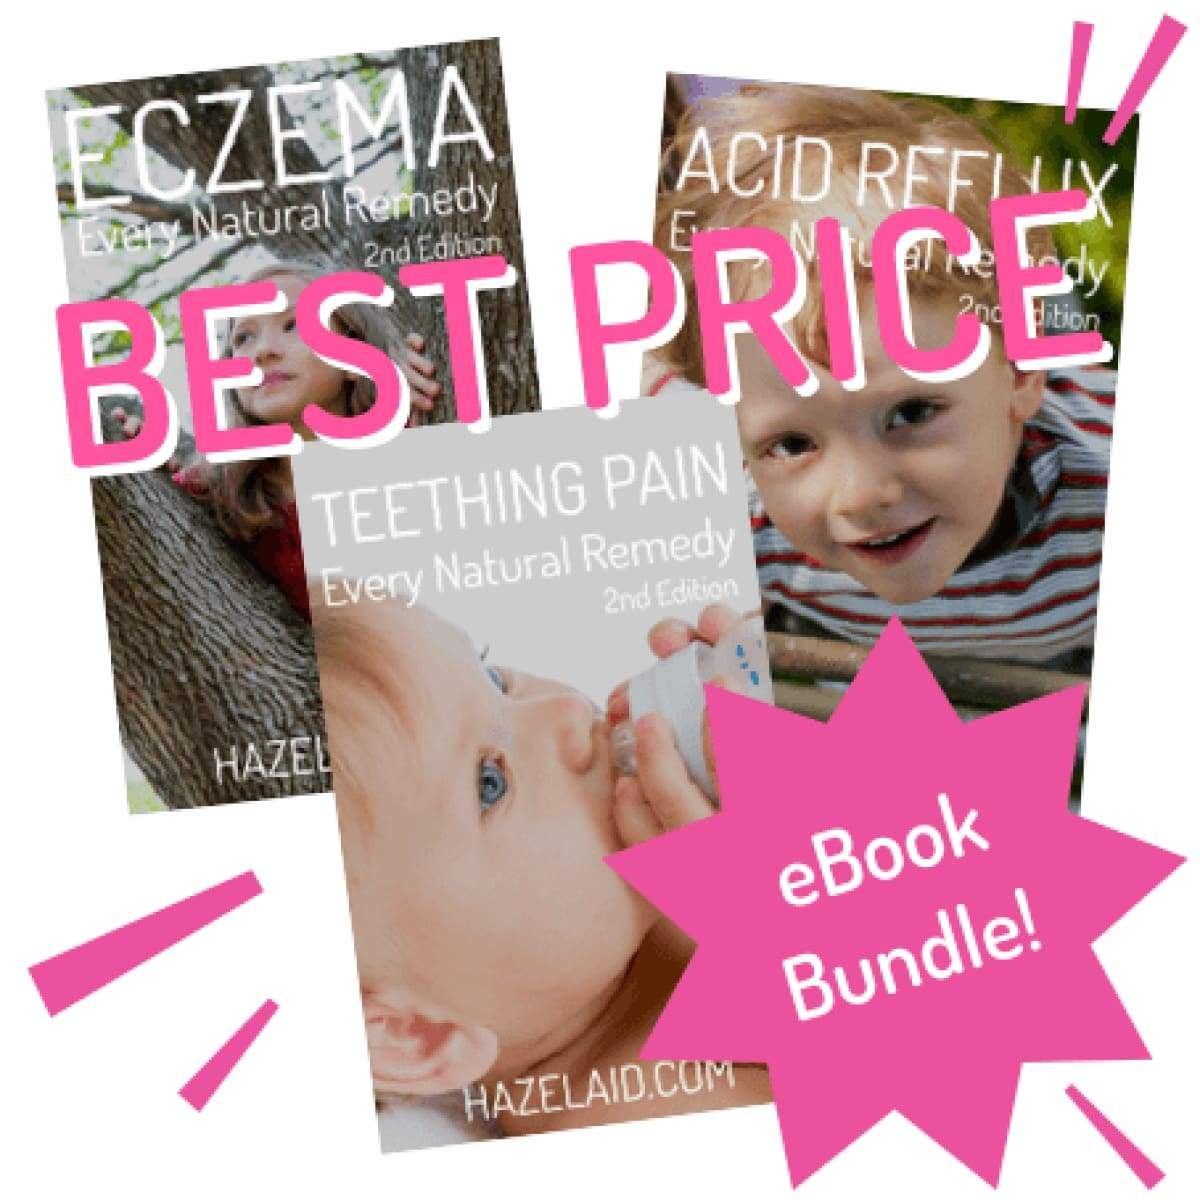 Every Natural Remedy - Eczema Acid Reflux & Teething Pain (Bundle) - 2Nd Edition - Ebook